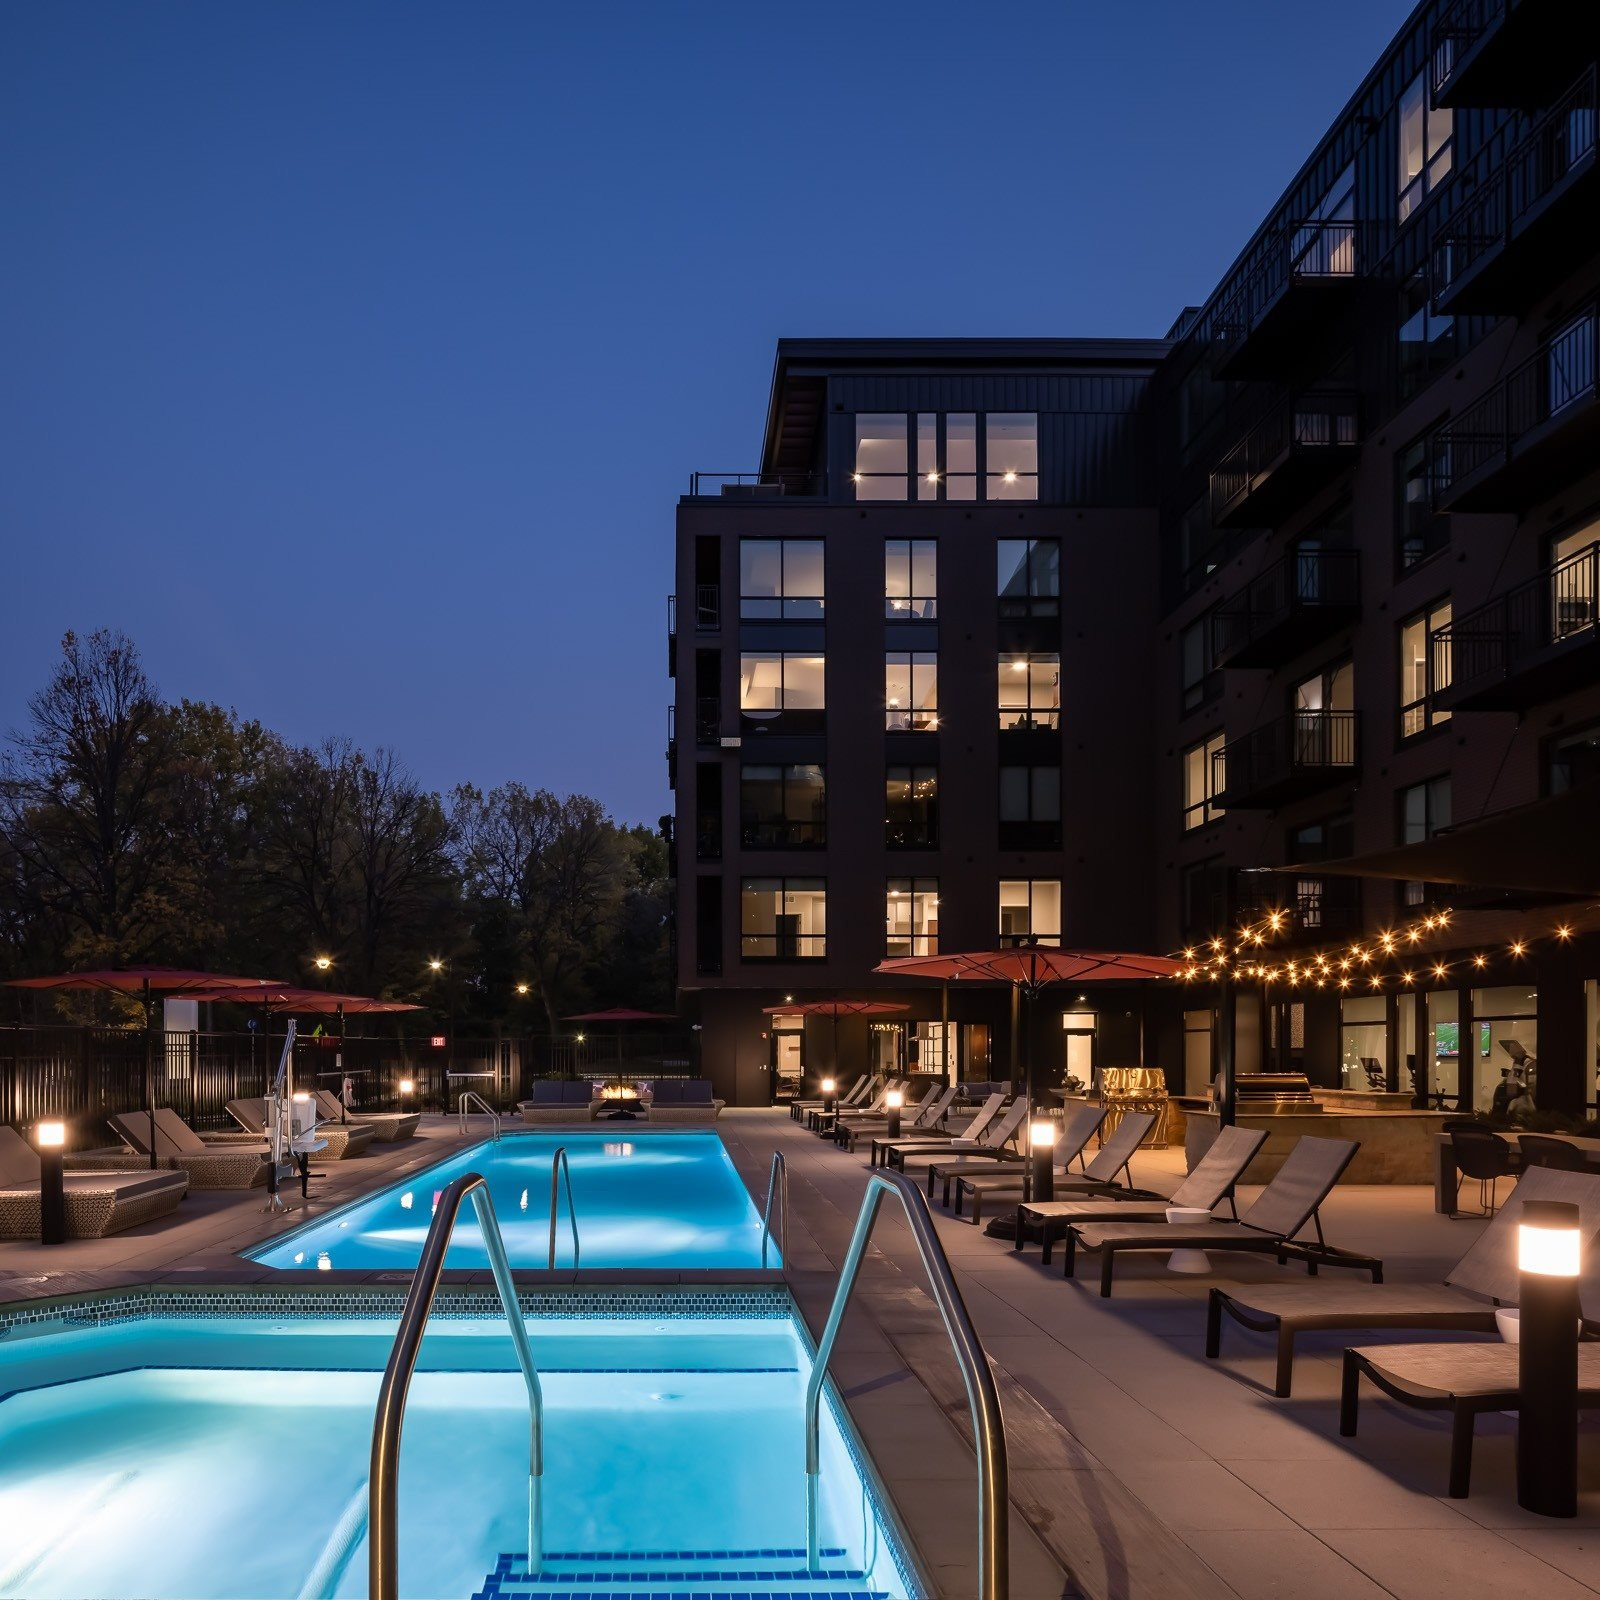 Dusk view of hot tub, pool, and pool seating on terrace with lit apartment windows